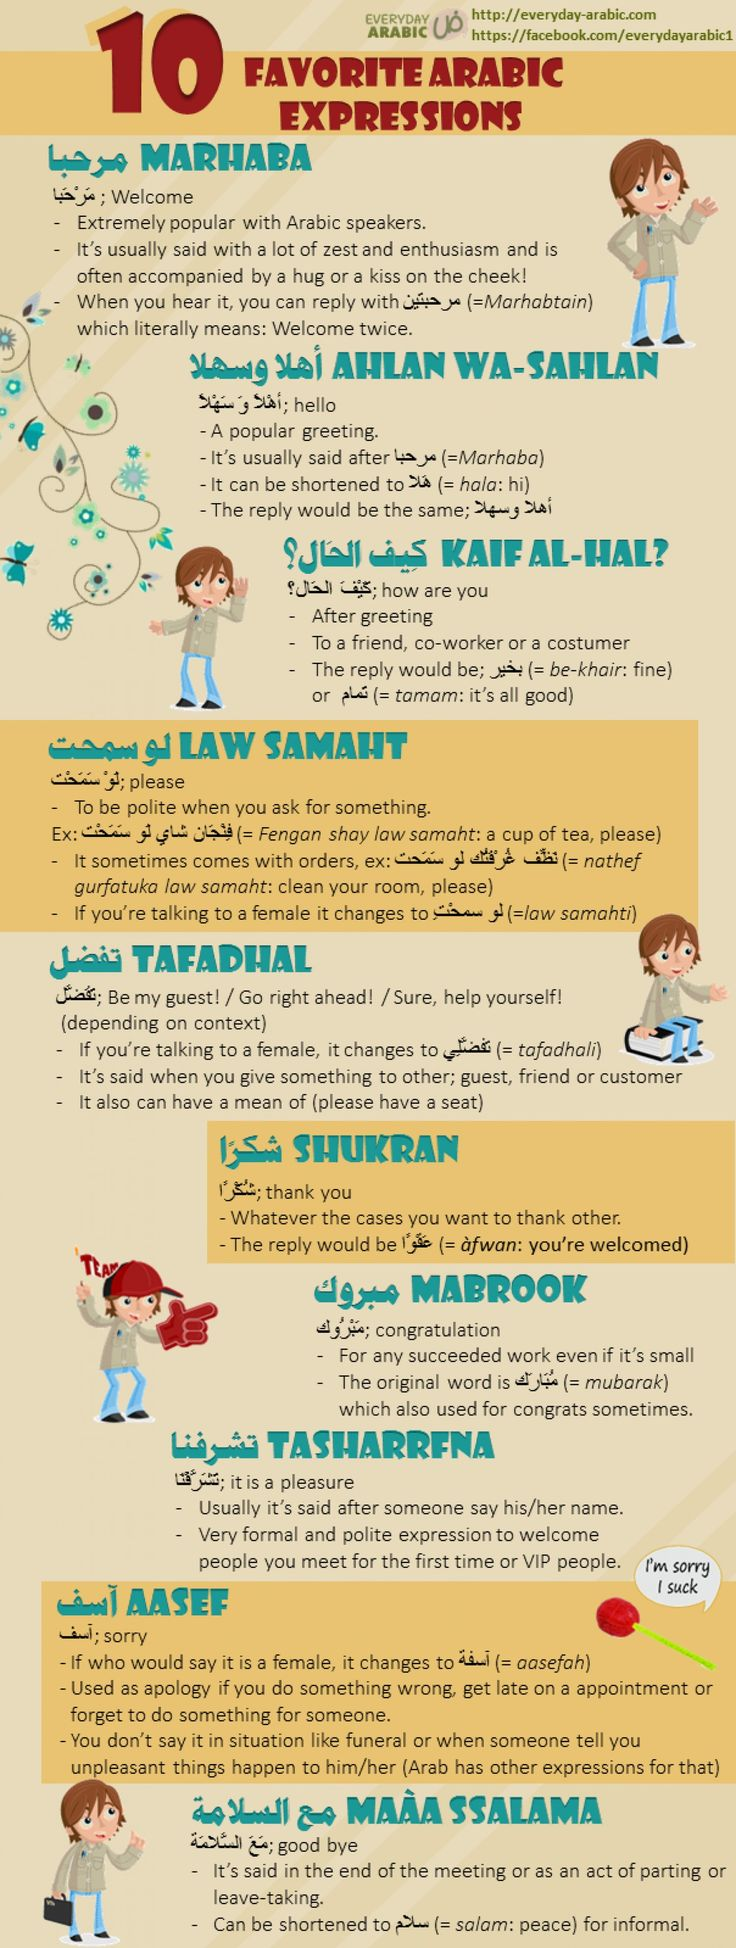 Get 6,000 Words - Learn Arabic for Free with FunEasyLearn ...